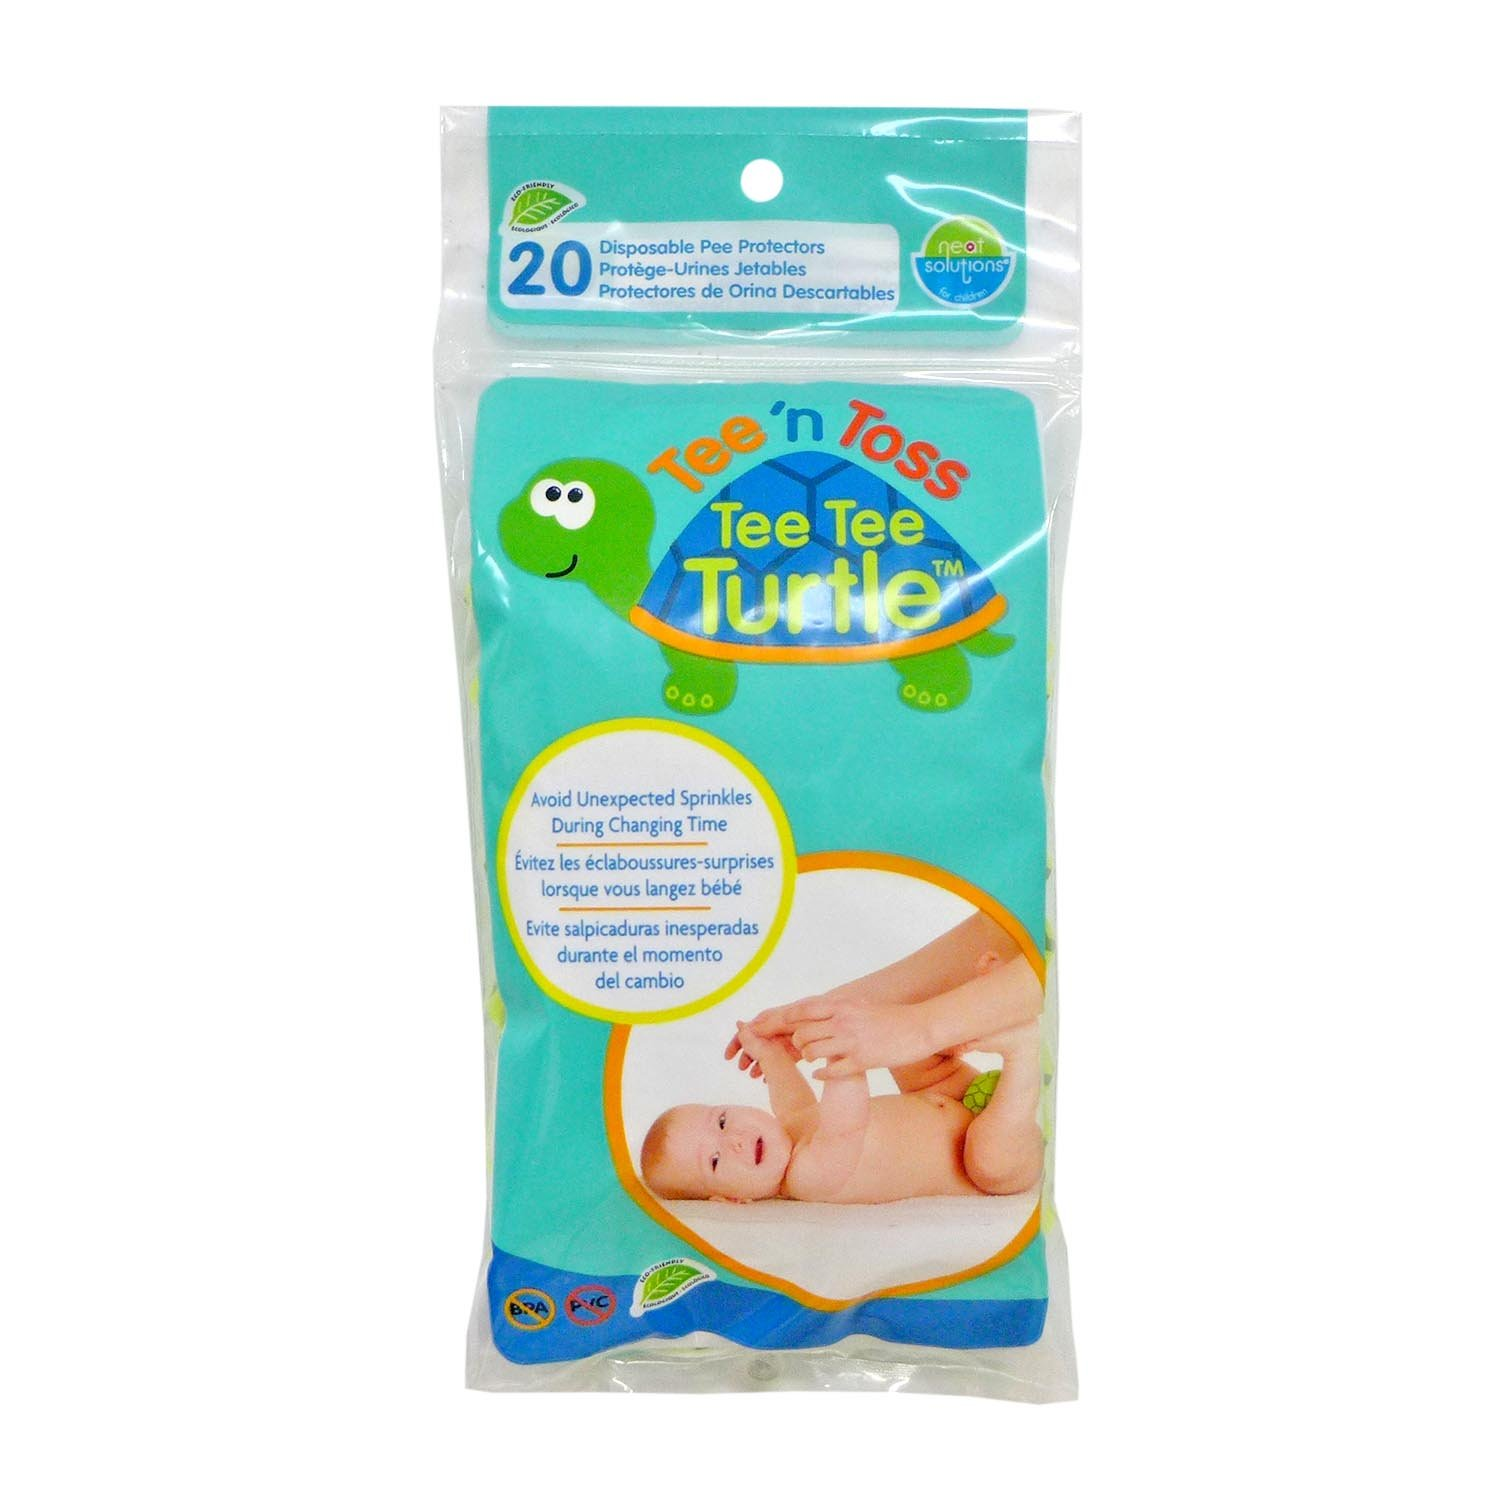 Amazon.com : Neat Solutions Tee N Toss Tee Tee Turtle, 20 Count : Baby